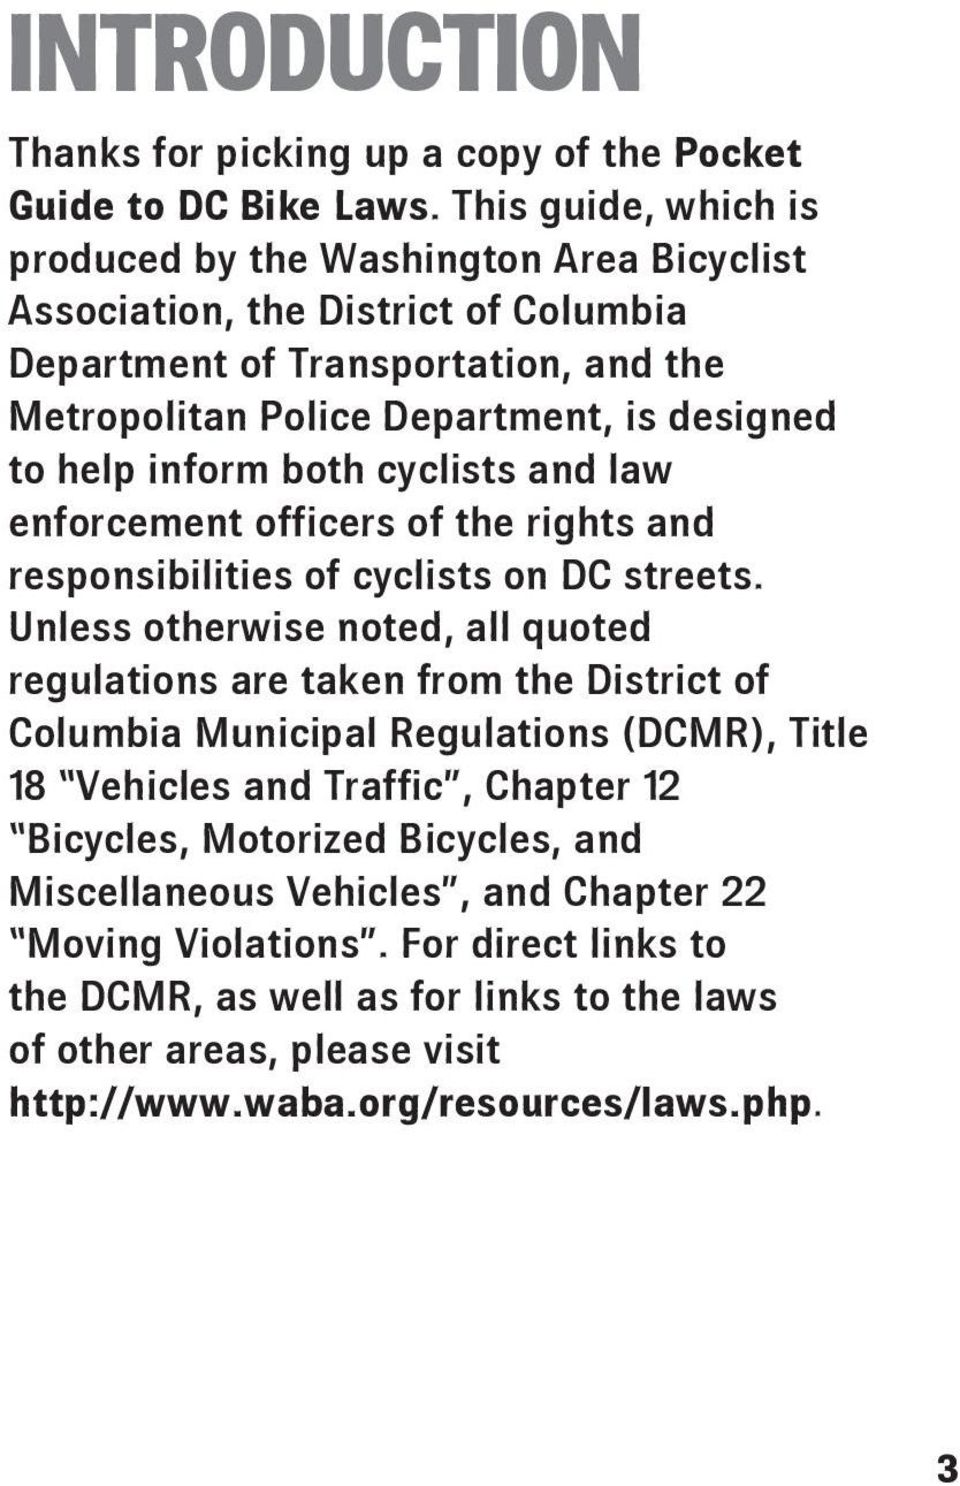 inform both cyclists and law enforcement officers of the rights and responsibilities of cyclists on DC streets.